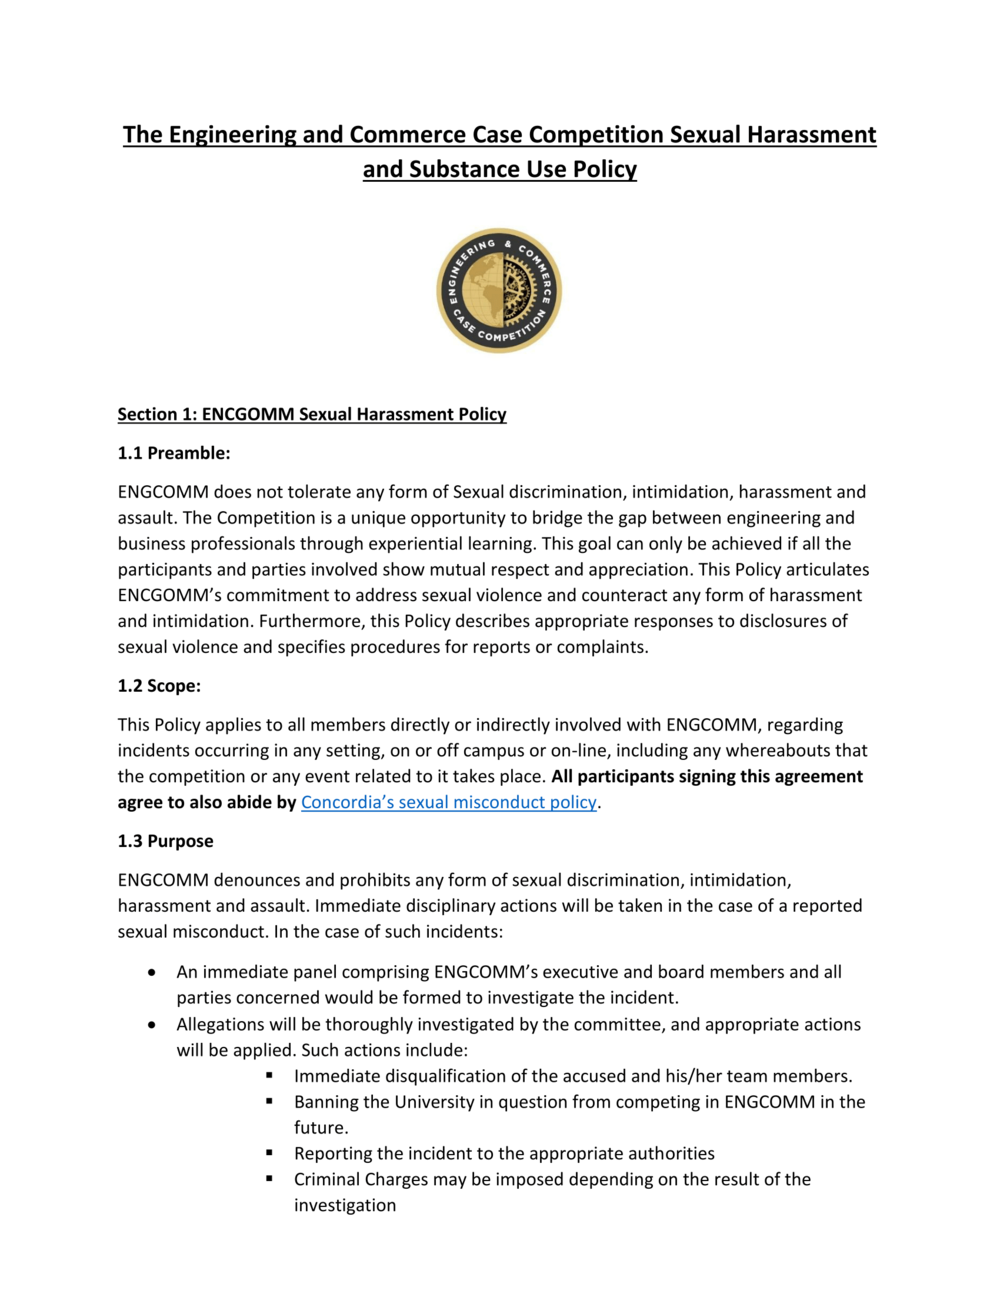 ENGCOMM Sexual Harassment and Substance Use Policy-1.png